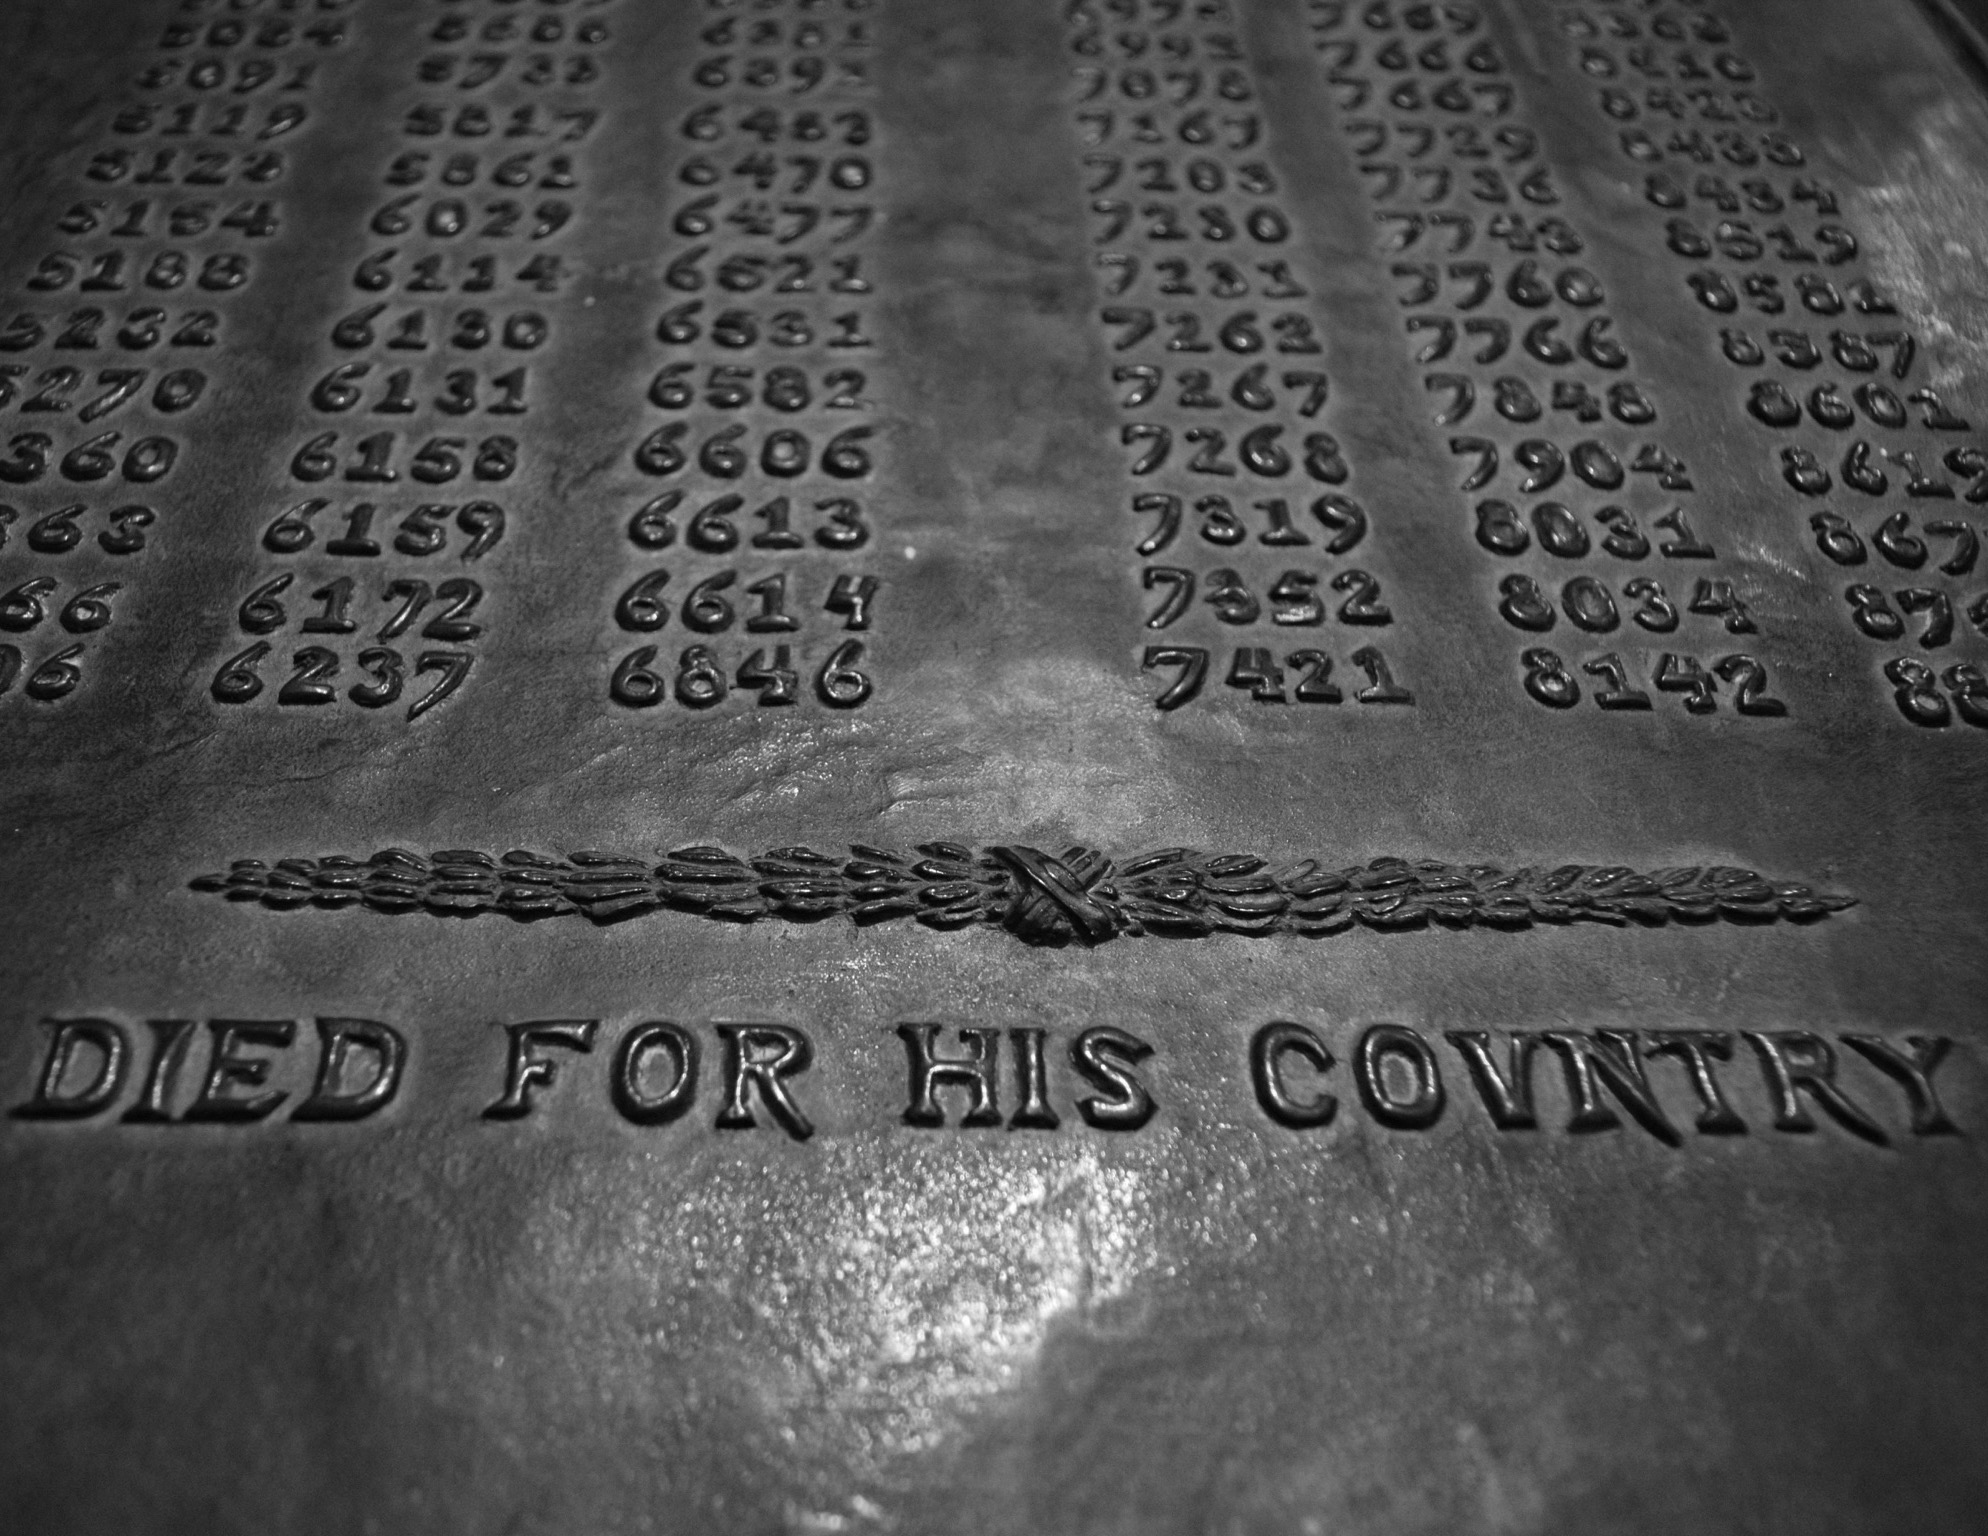 Memorial plaque to those killed in WWI, identified only by their prisoner number.